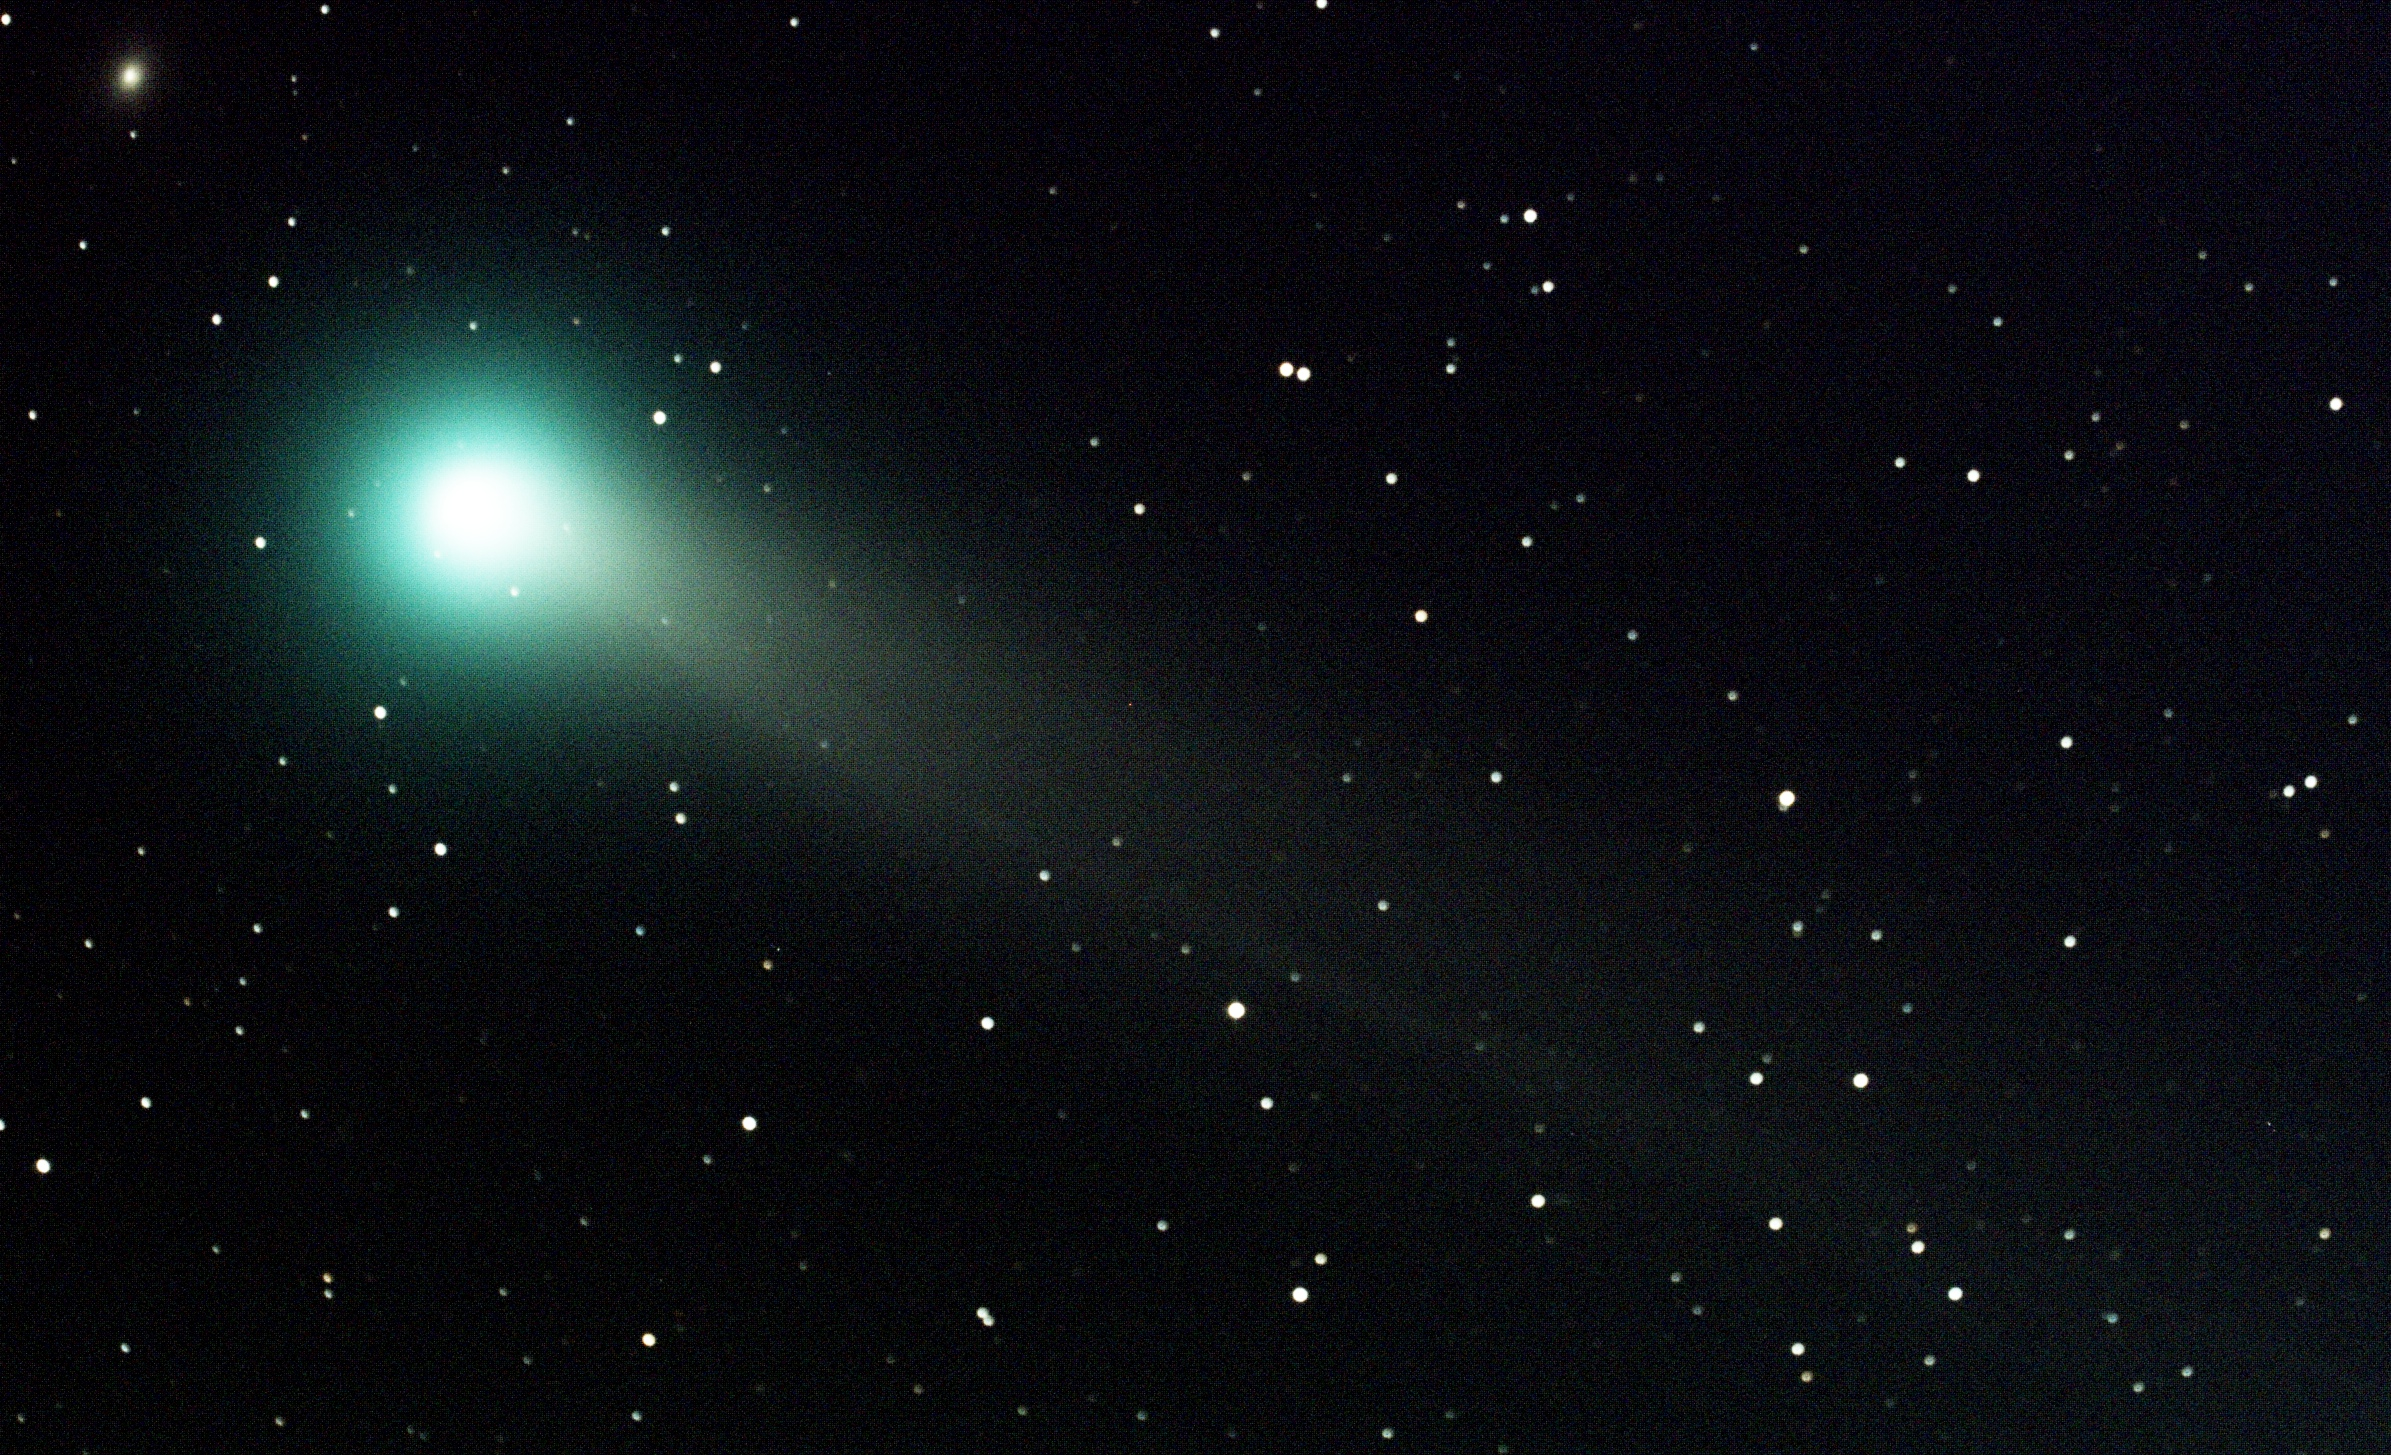 Comet Lovejoy in Ursa Major | NASA